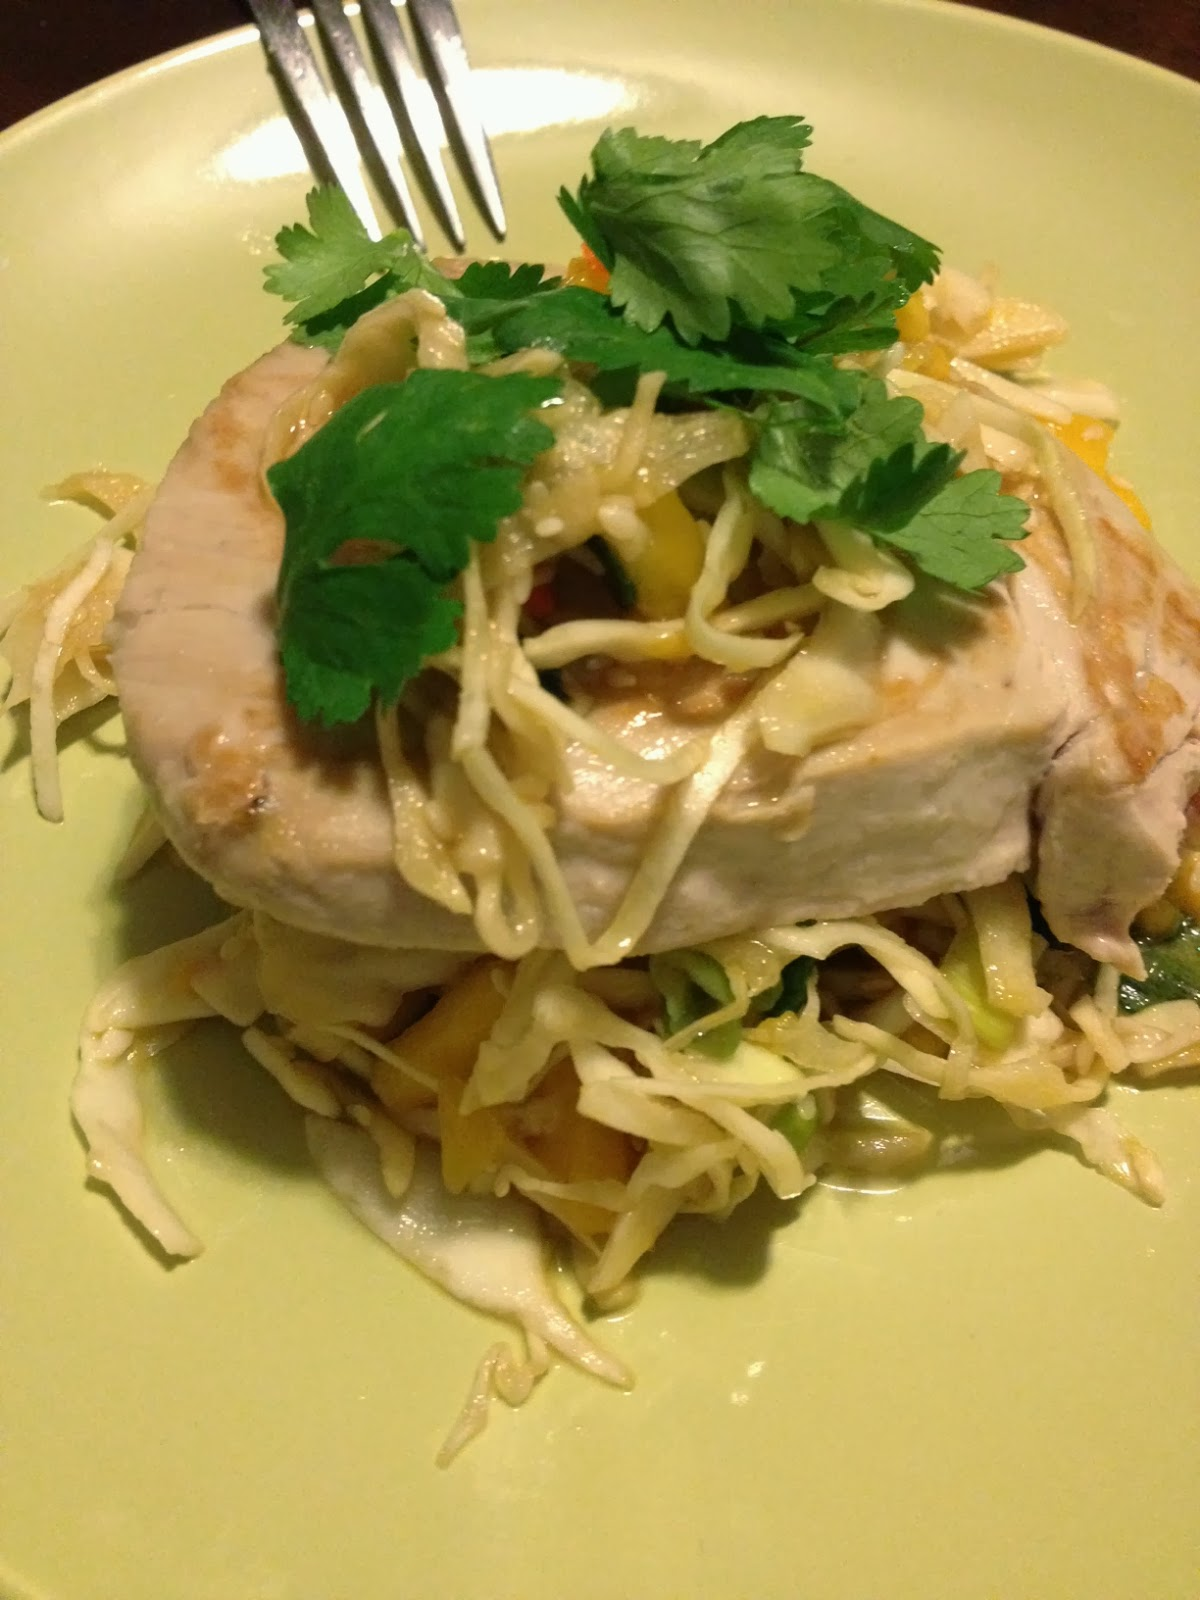 The Classy Cook: Asian Cabbage Mango Slaw